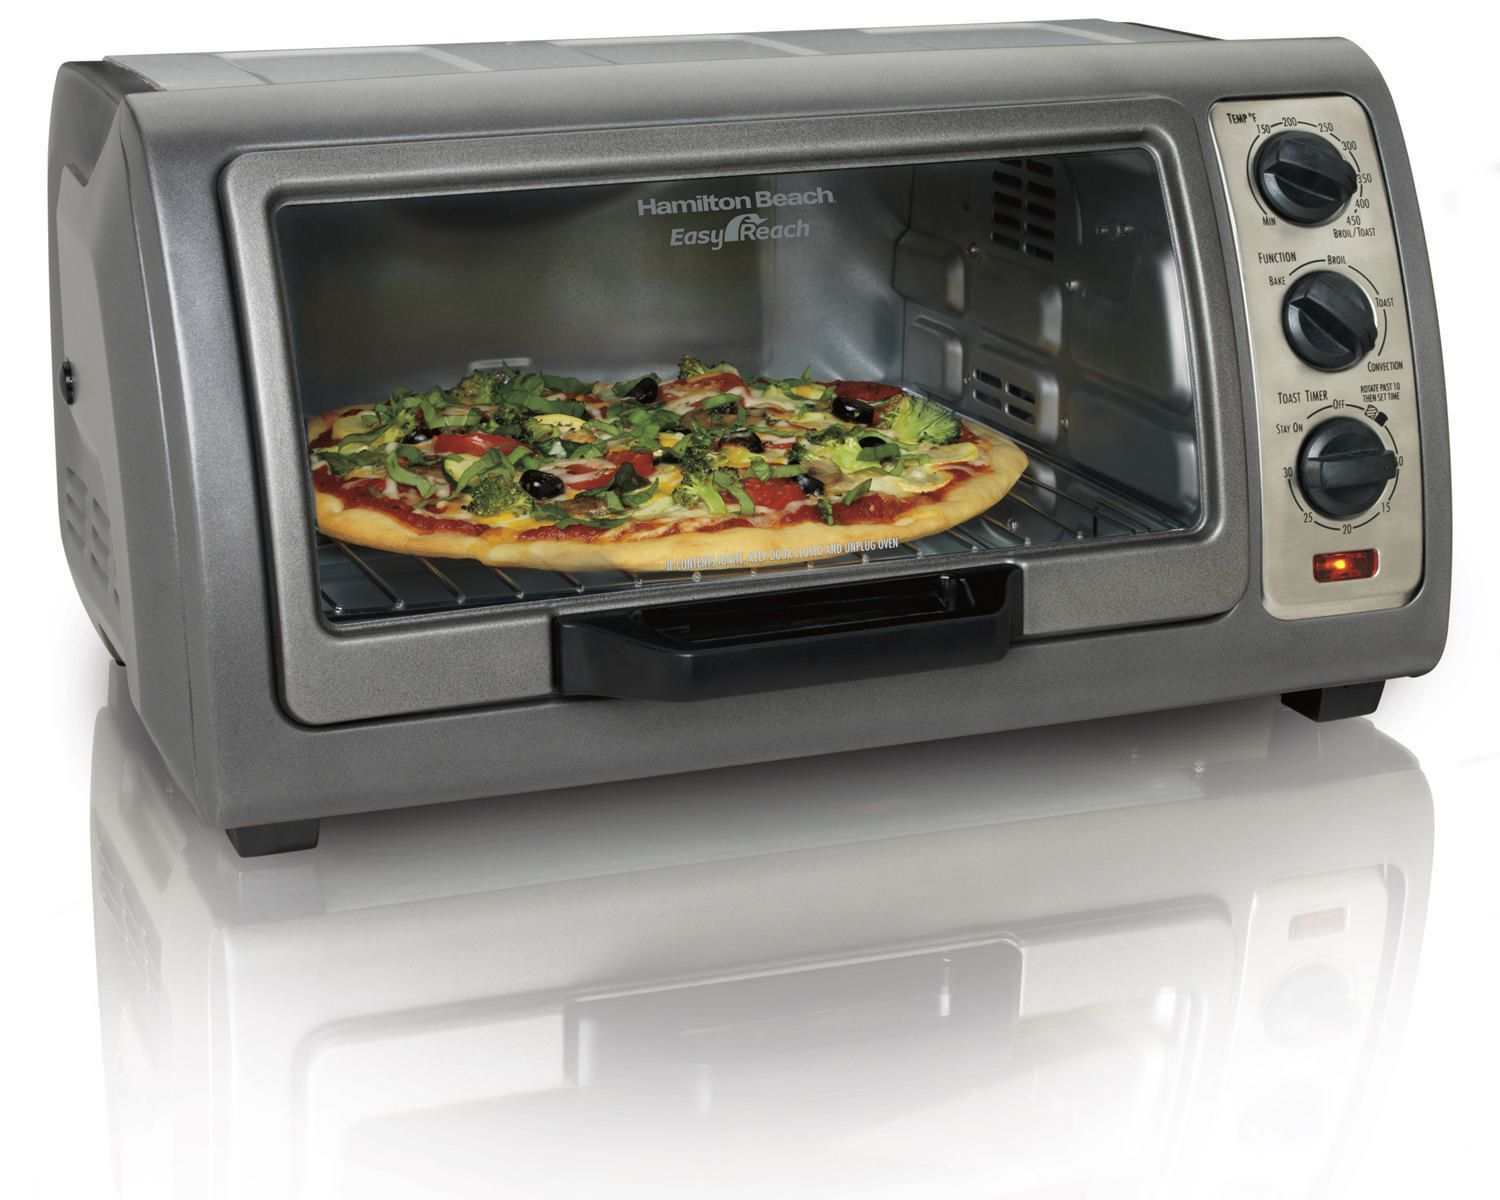 convection ovens best fresh sale small of toaster on walmart oven